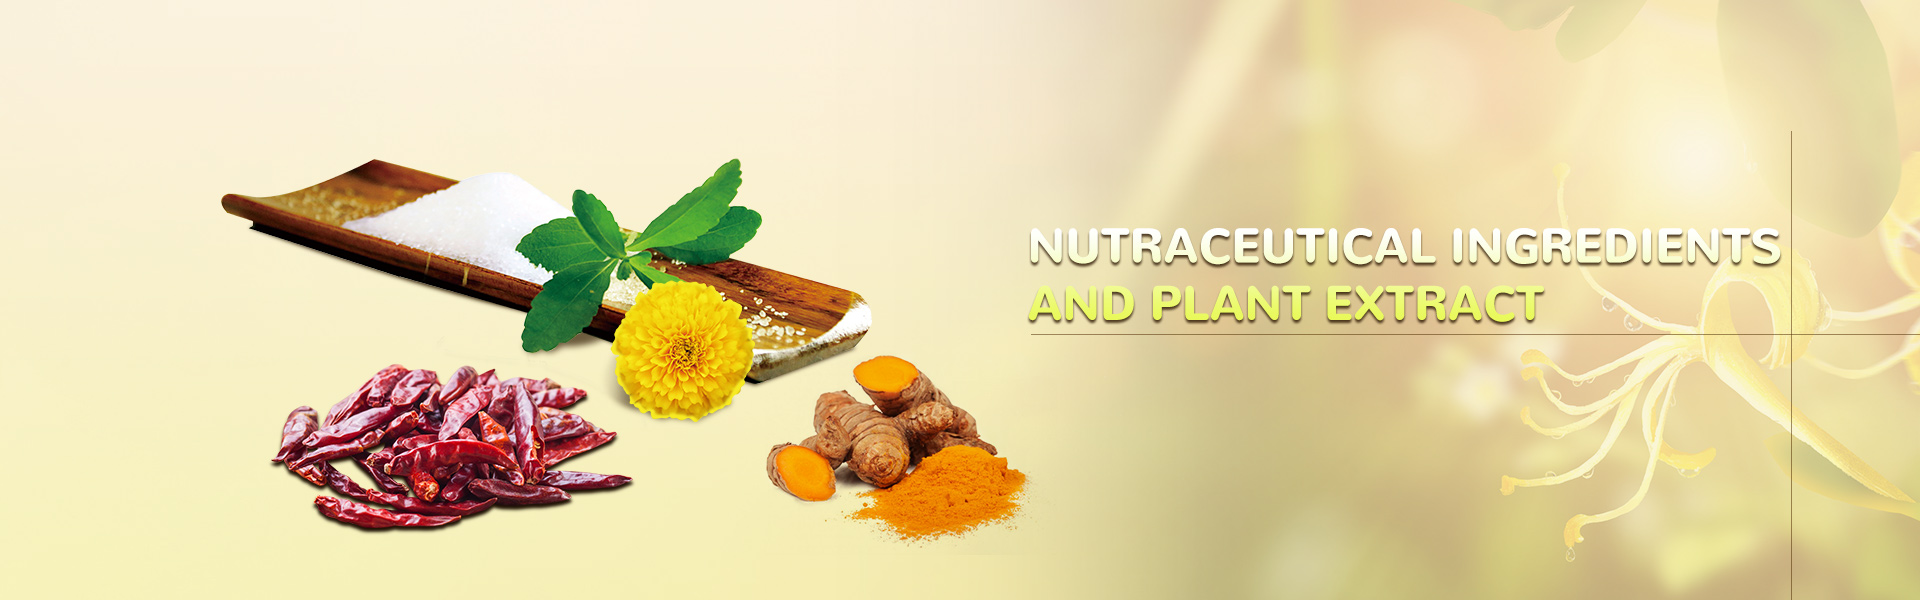 Nutraceutical ingredients  and Plant Extract